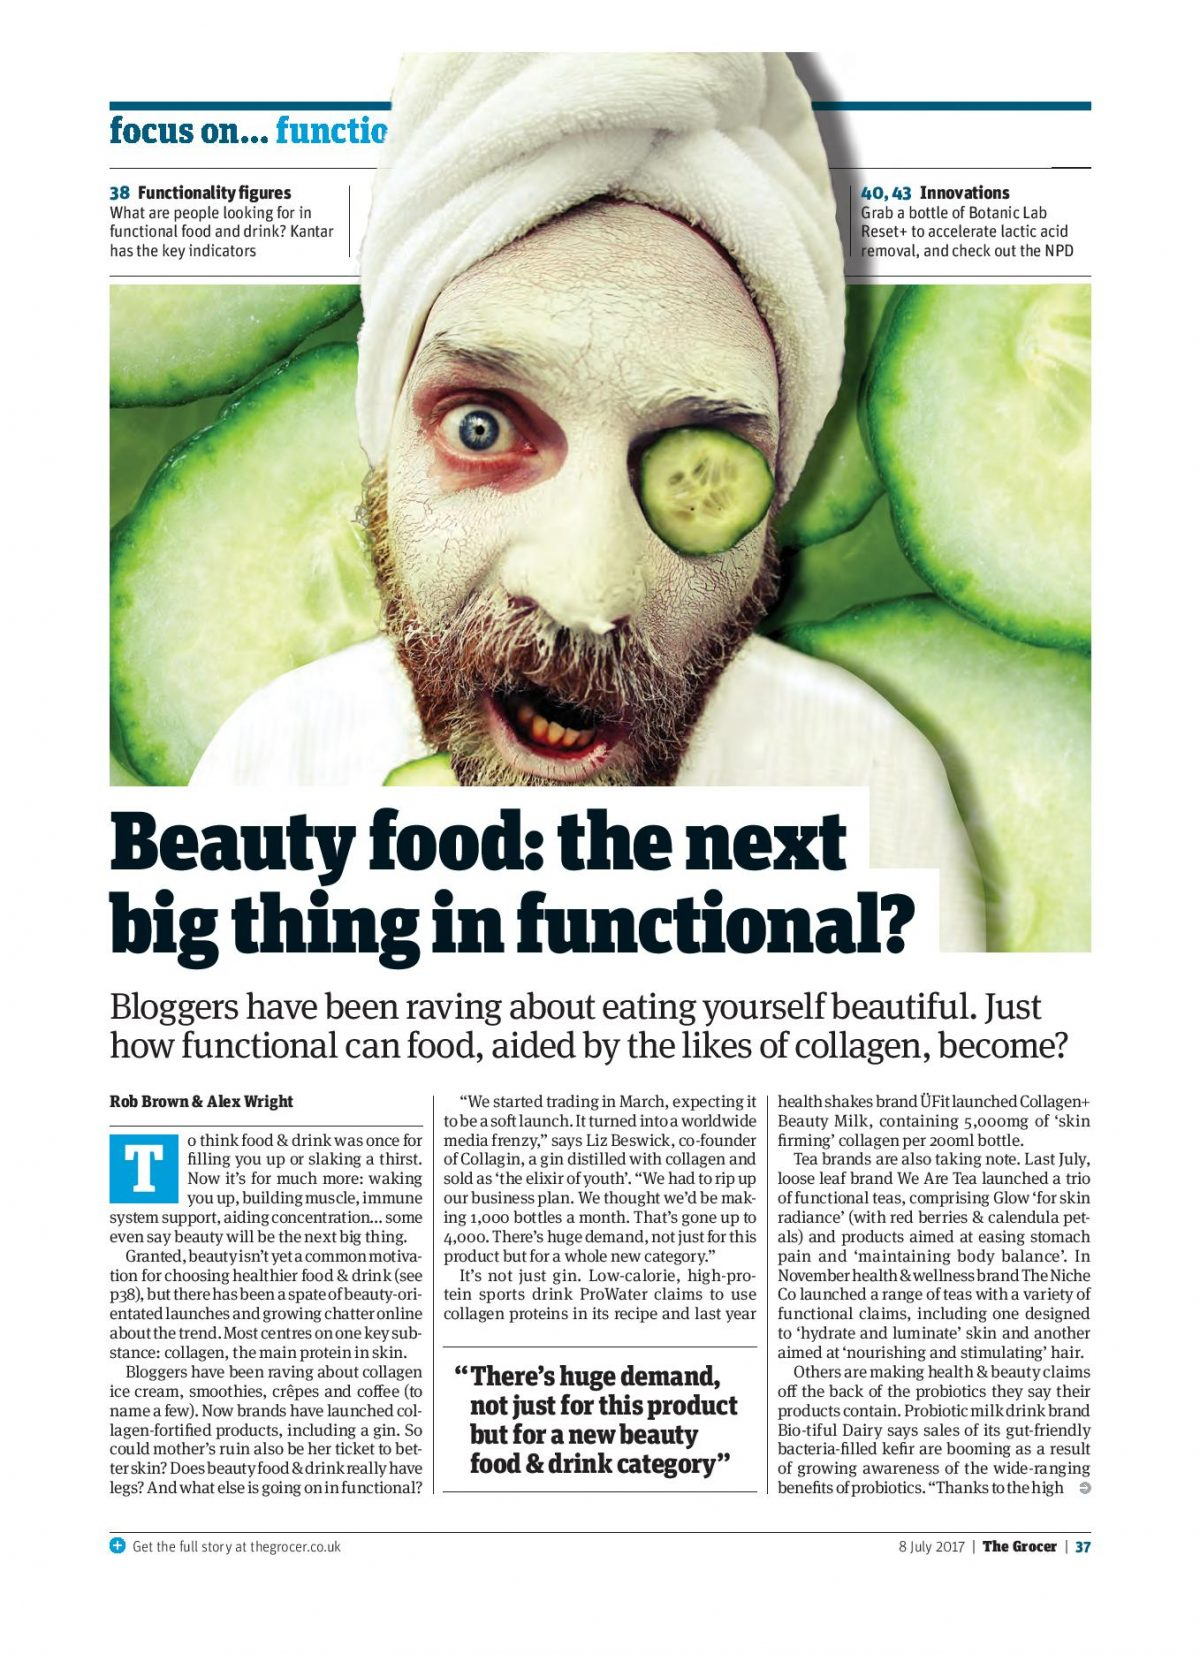 beauty-food-the-next-big-thing-in-functional-page-001